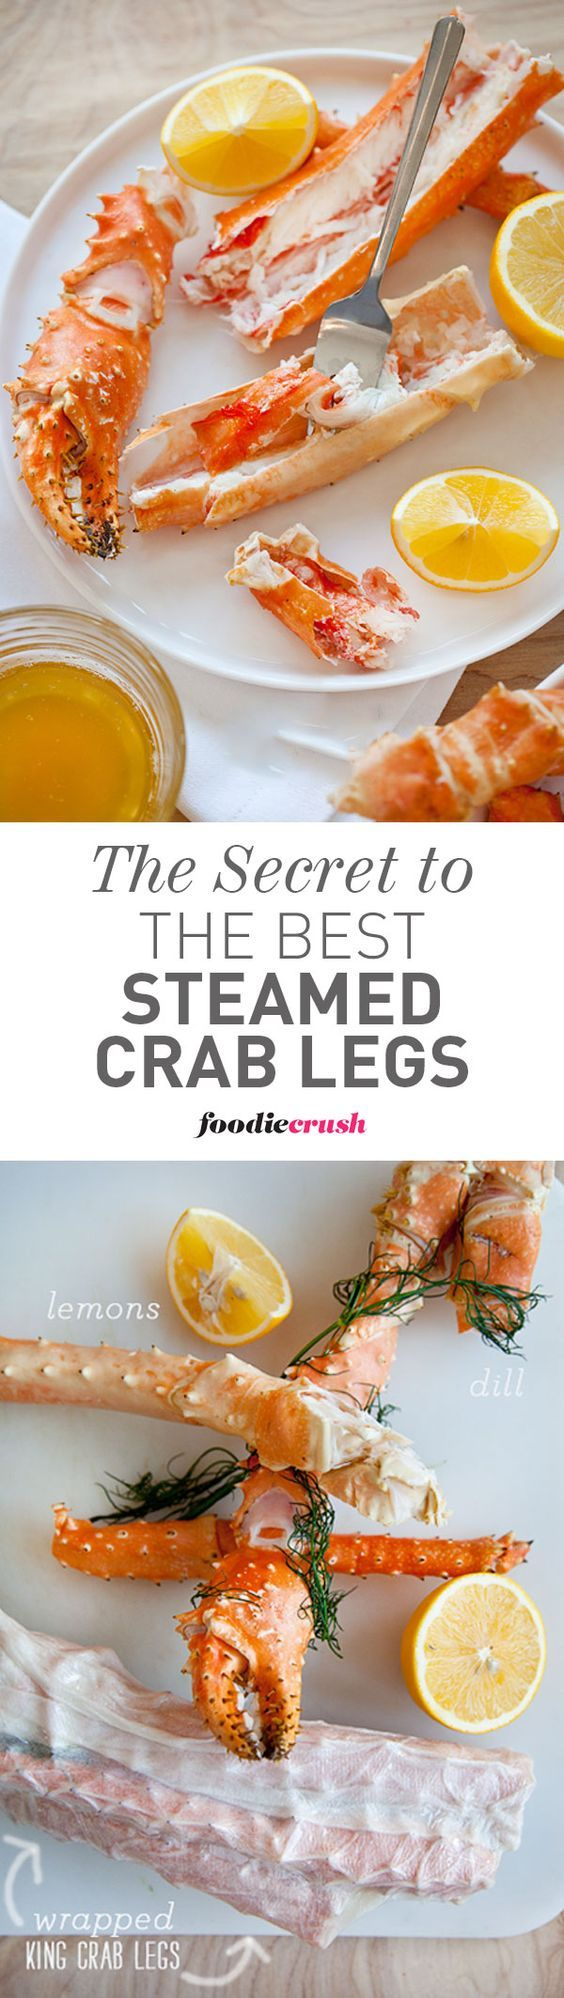 The secret trick to making the best steamed crab legs is your microwave!   foodiecrush.com #crab #seafood #recipe